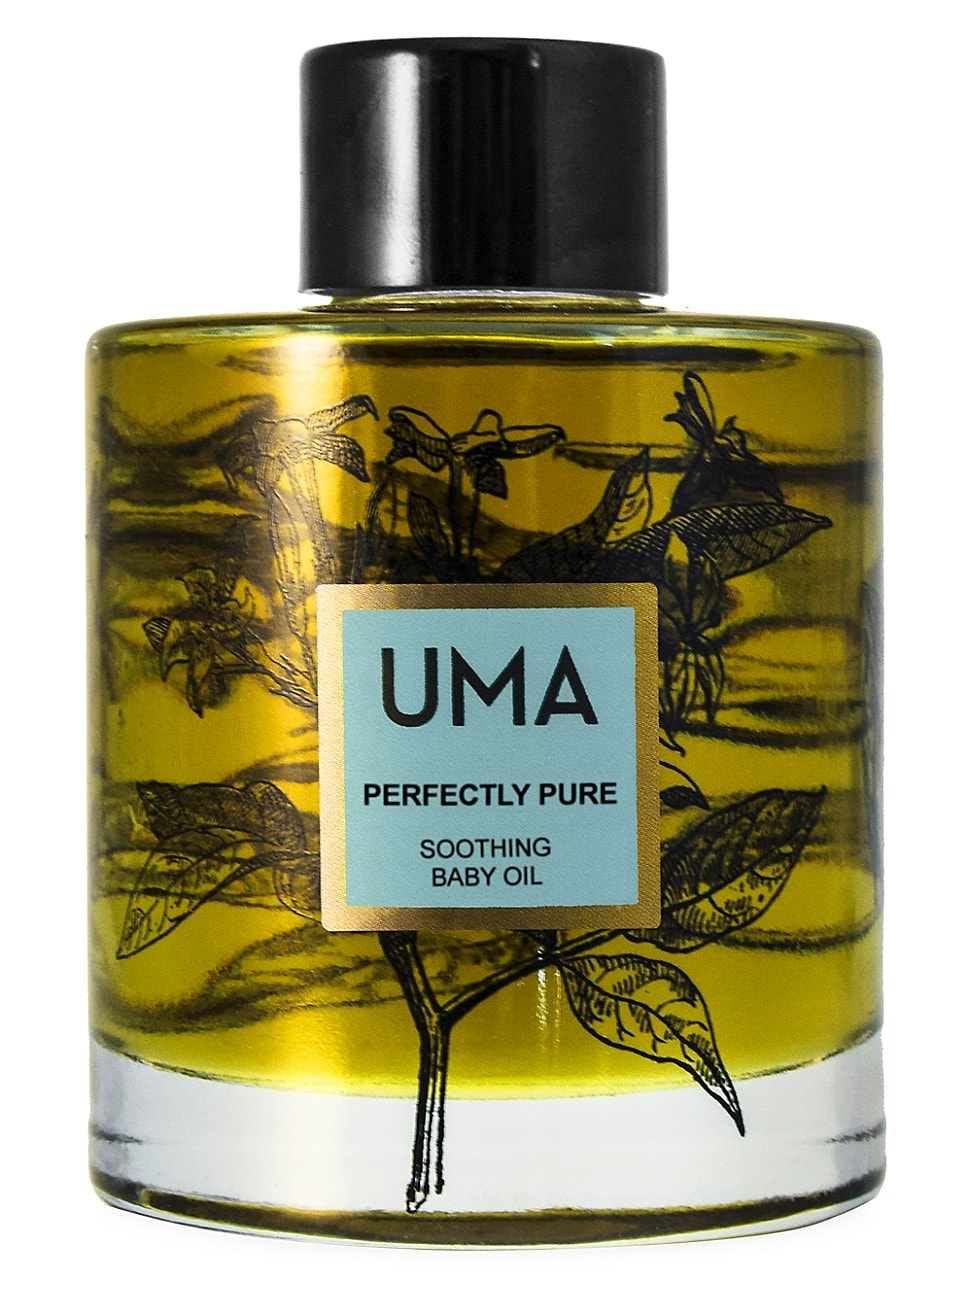 Uma WOMEN'S PERFECTLY PURE SOOTHING BABY OIL